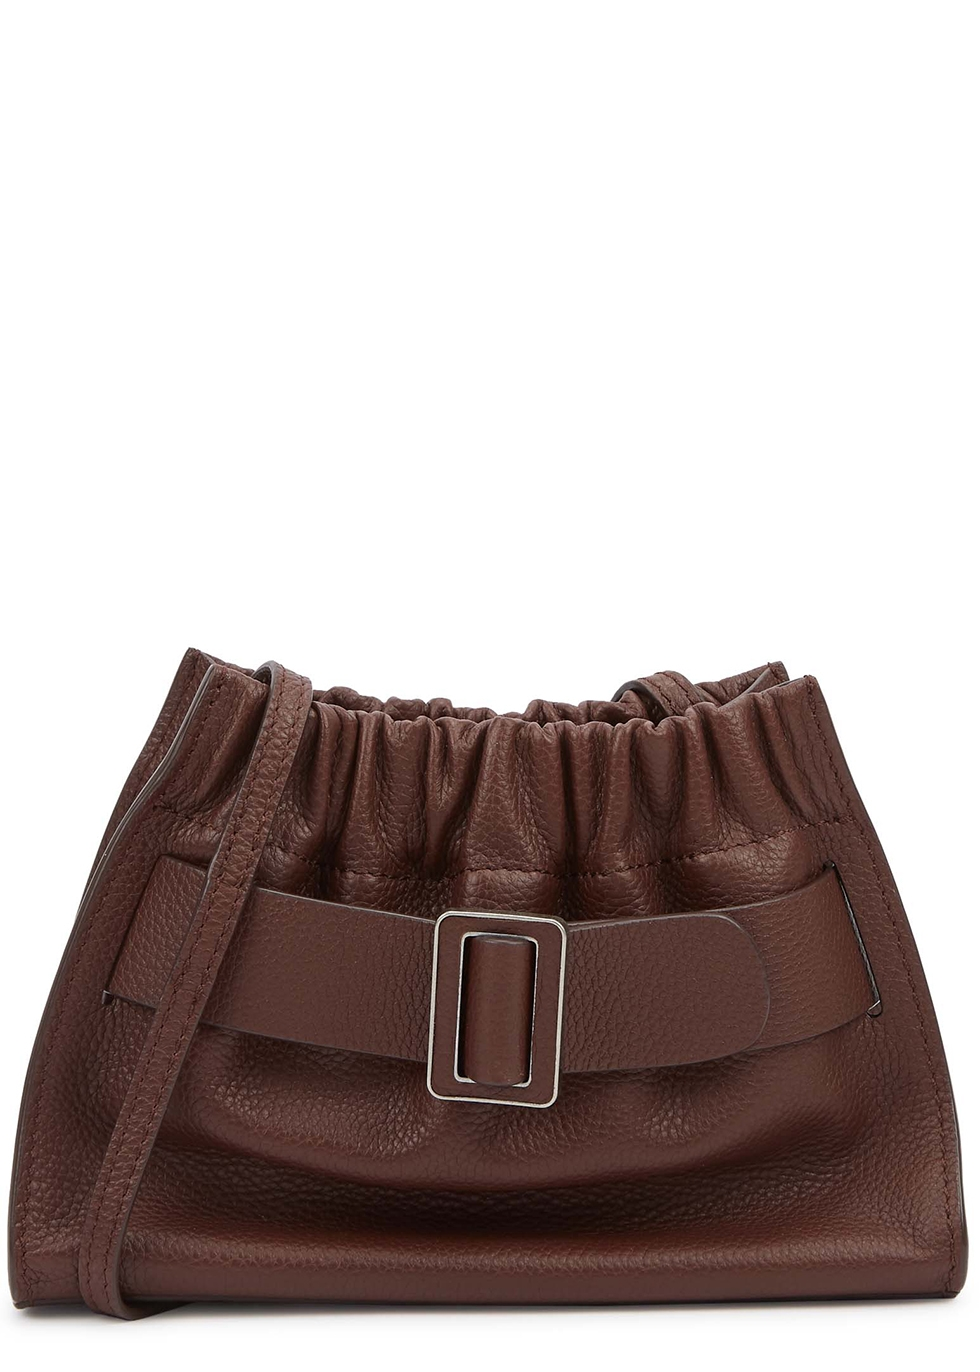 Square Scrunchy leather cross-body bag